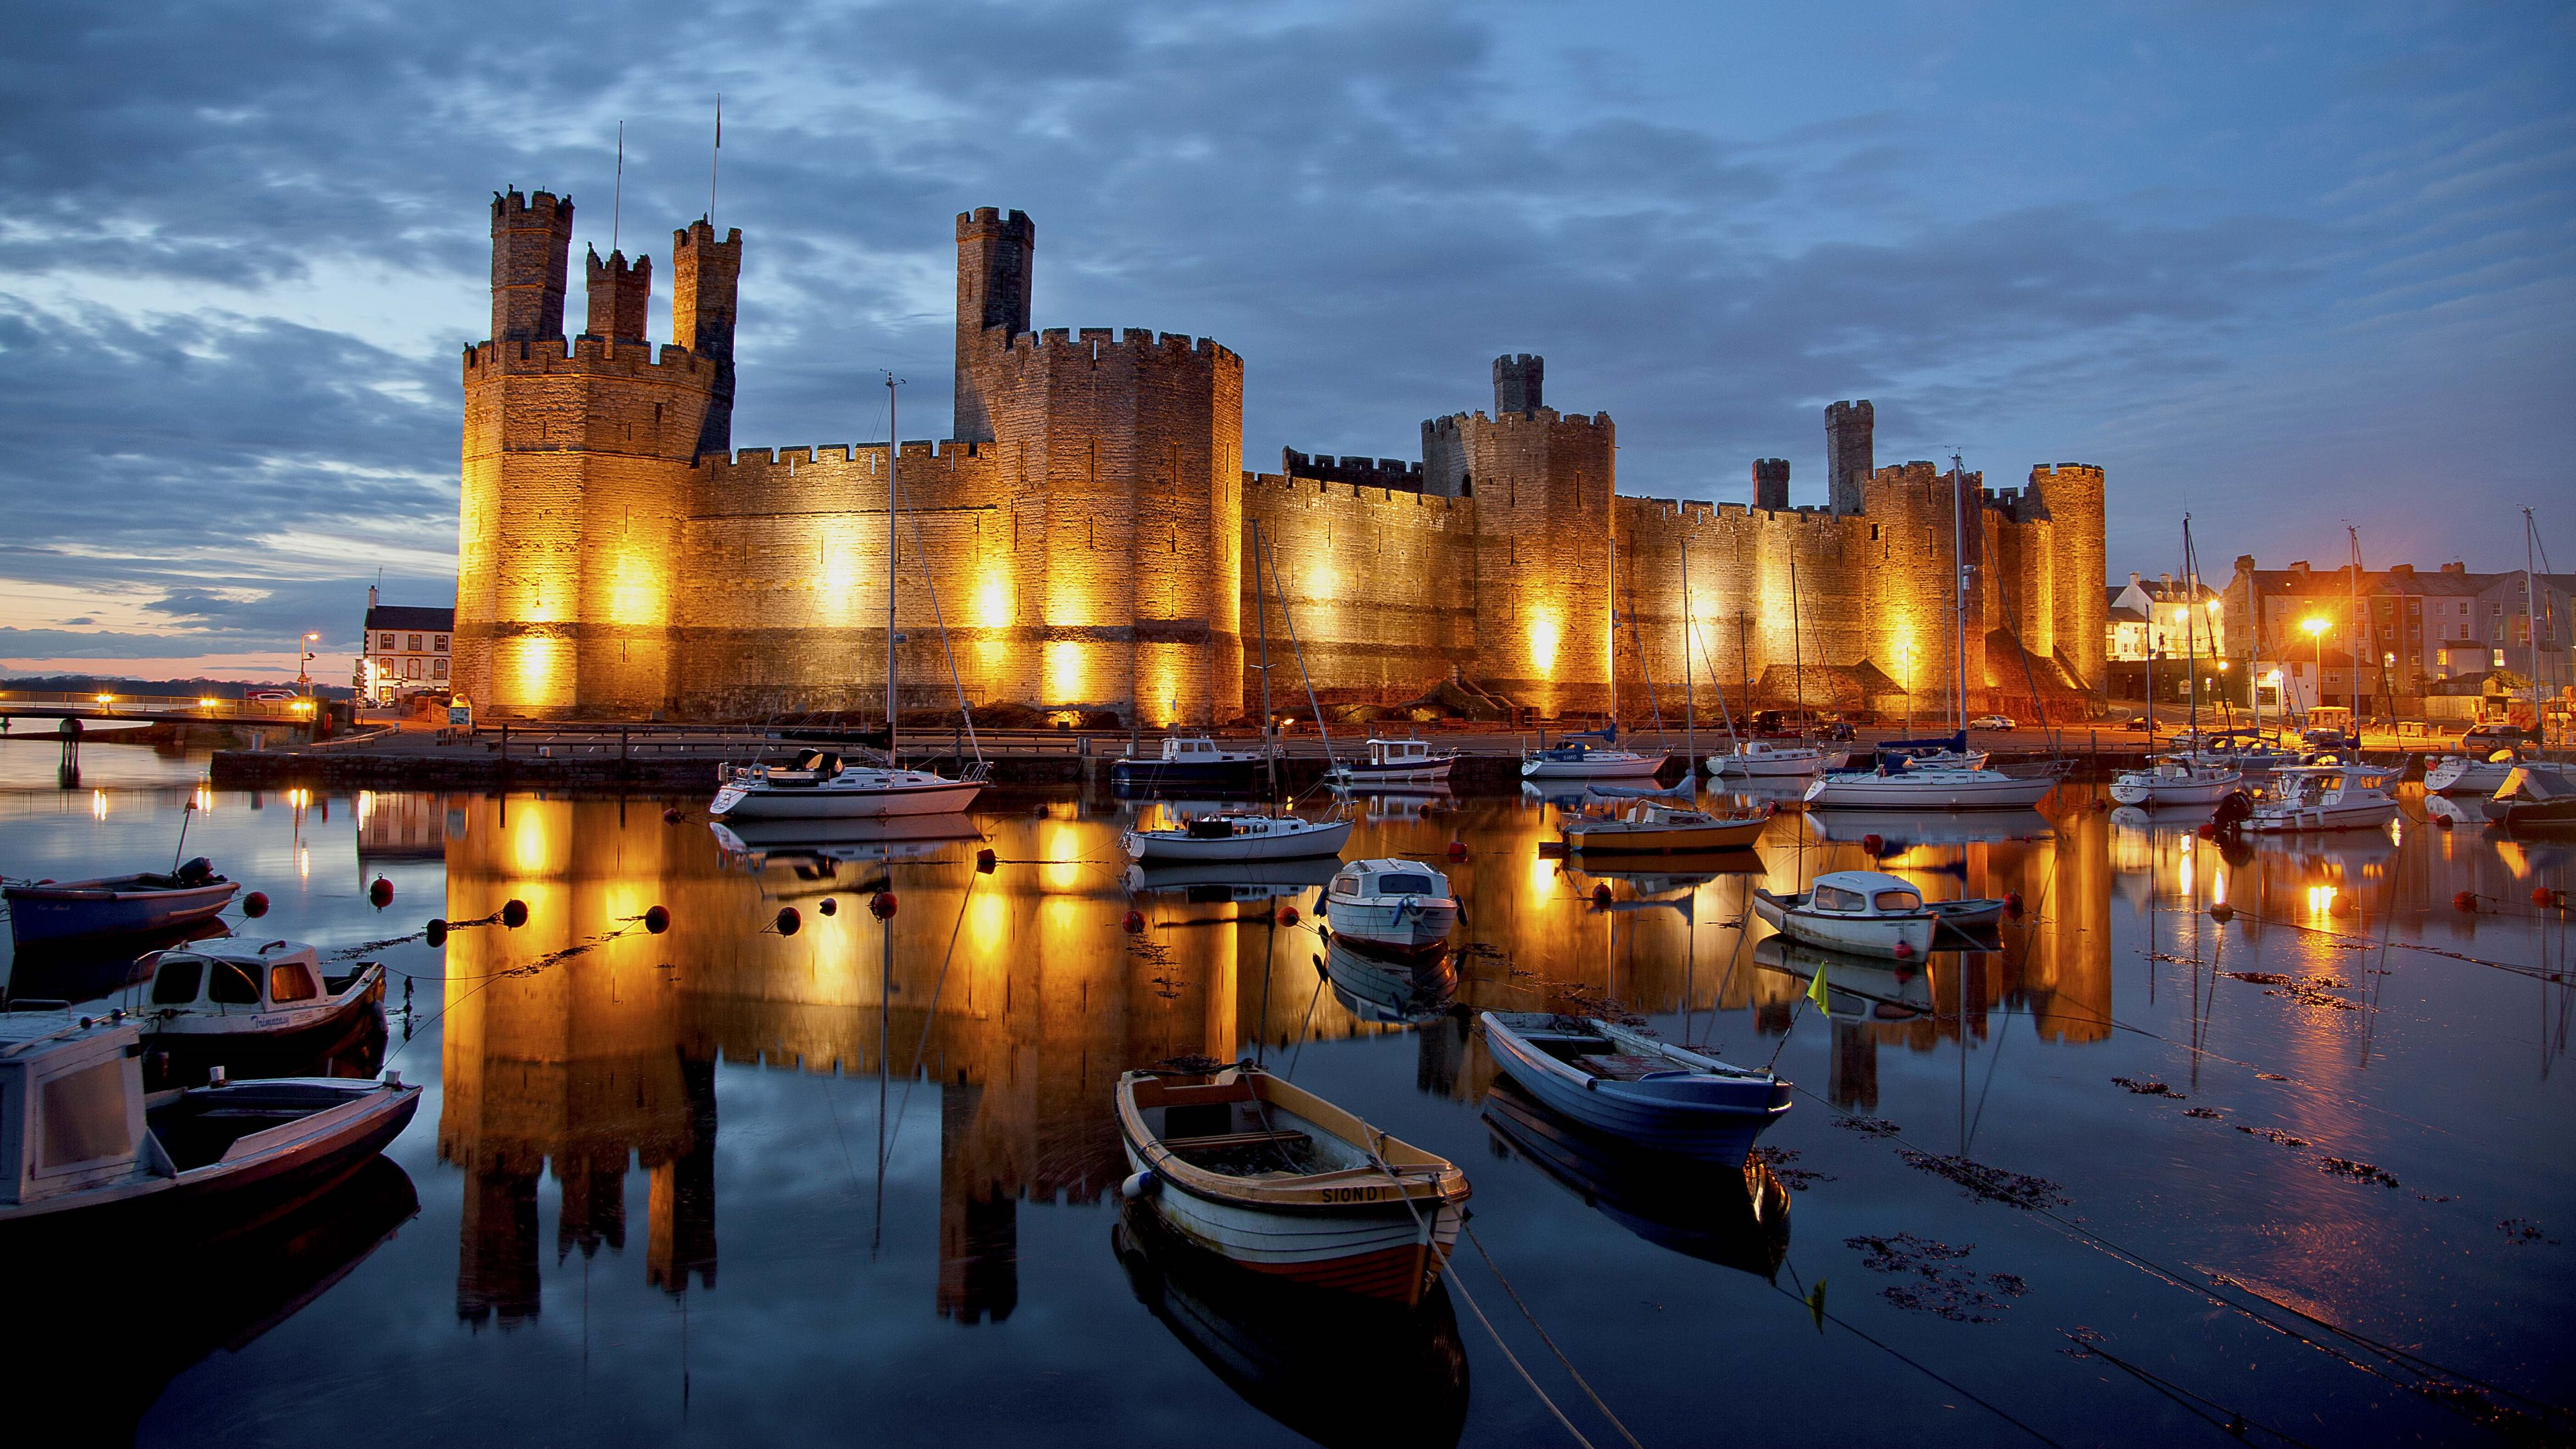 The Best Castles in Great Britain 546577